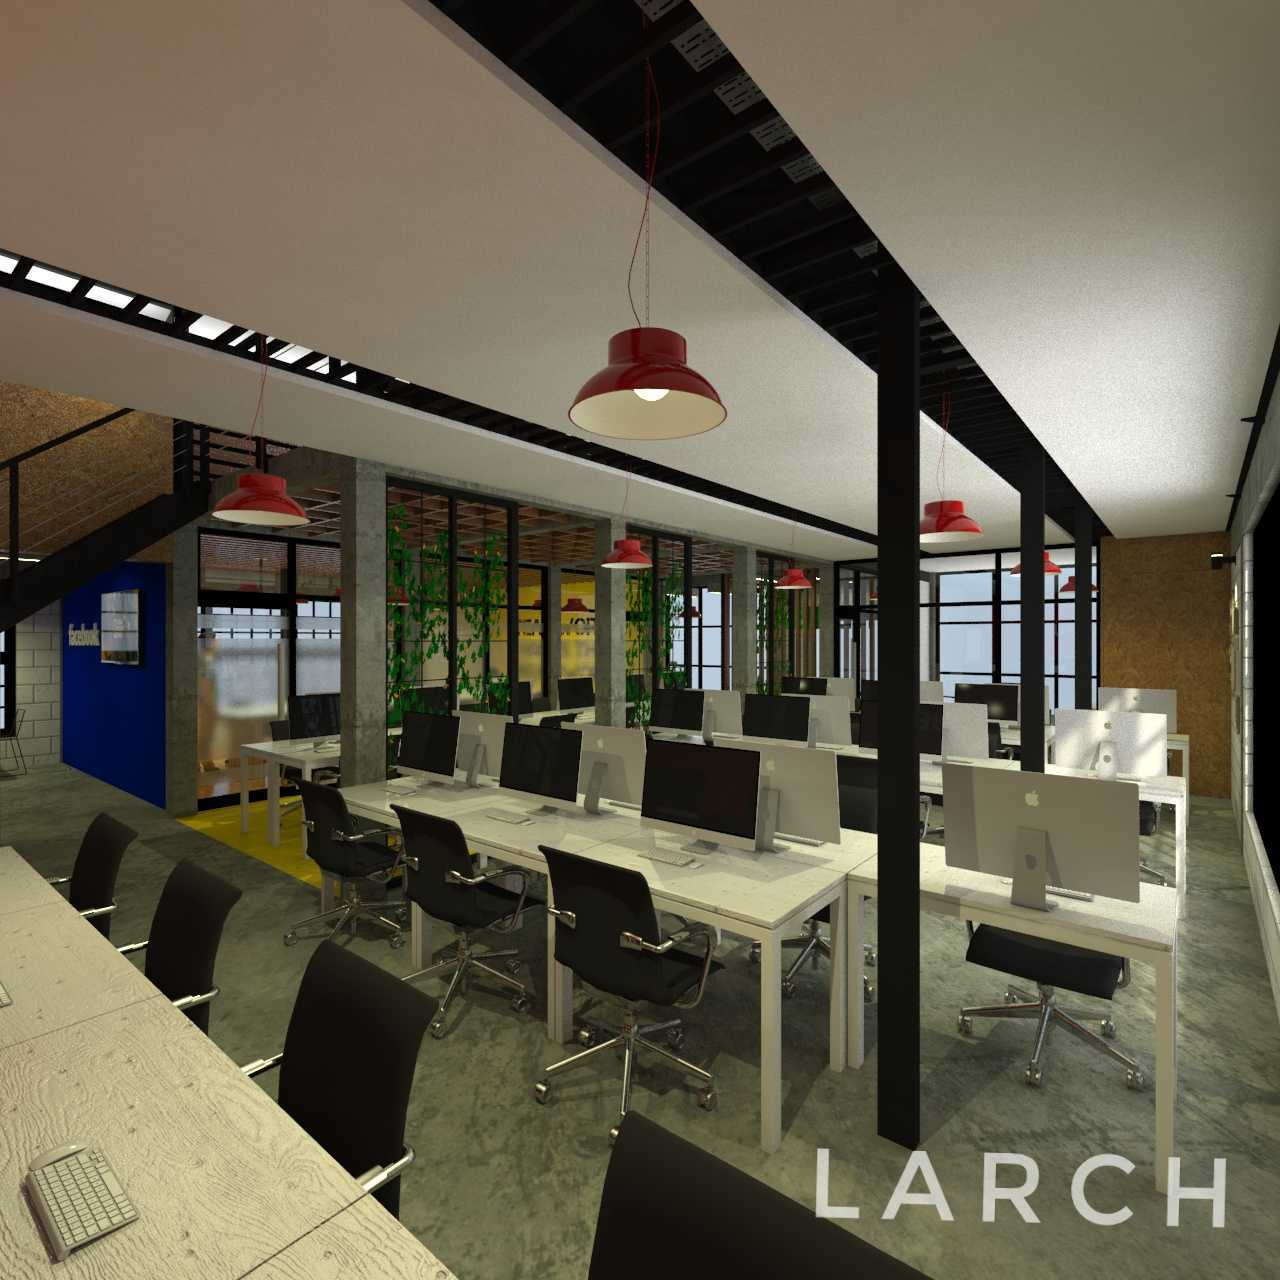 Jasa Design and Build Larch Architecture Team di Indonesia